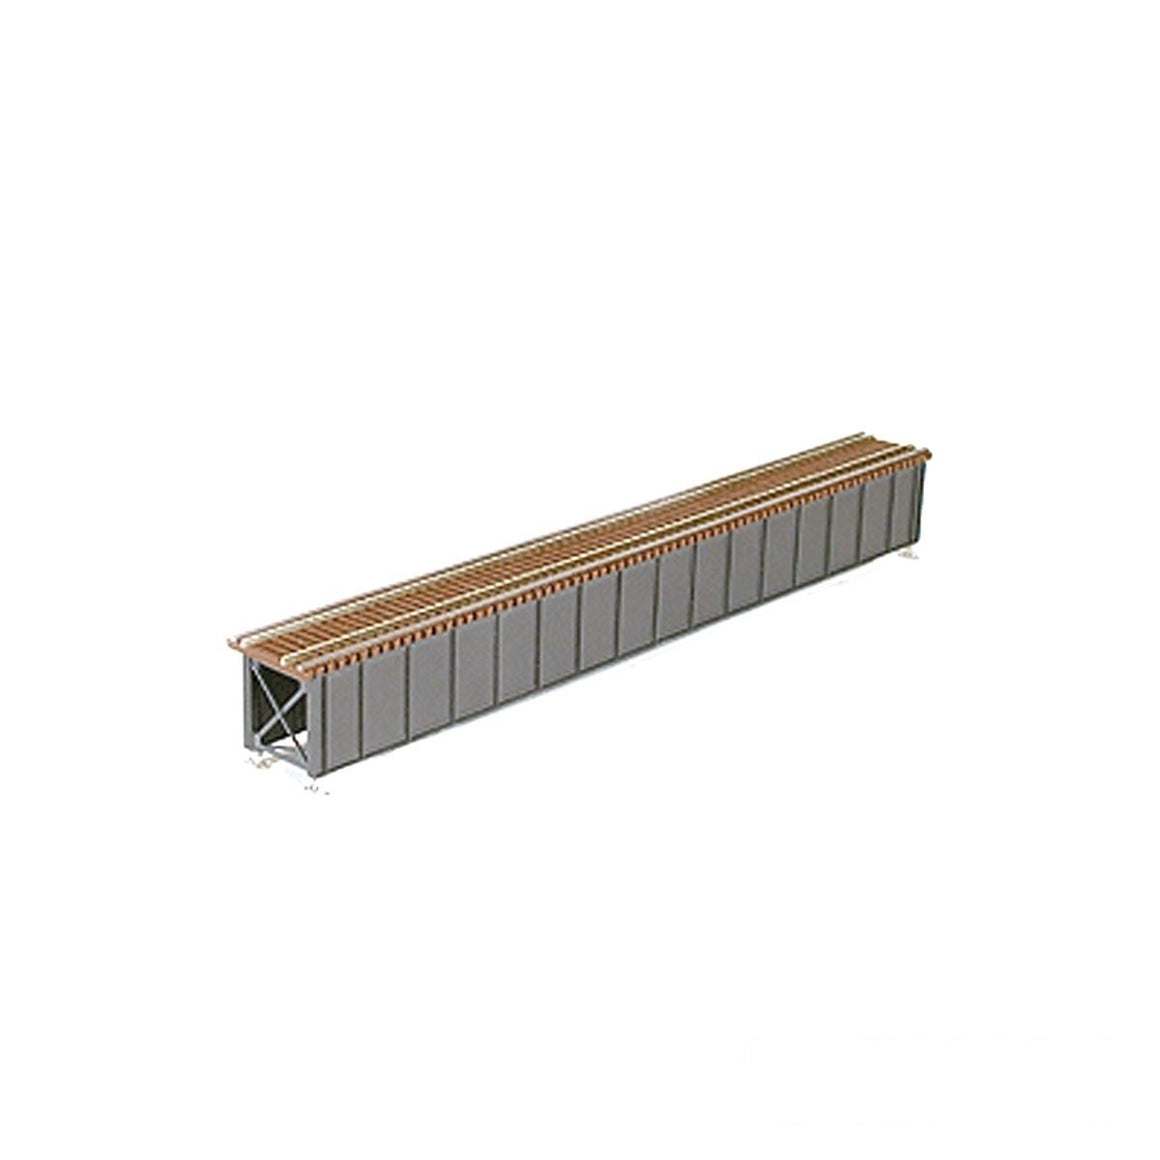 HO Scale: Open Deck Girder Bridge - 85-Foot